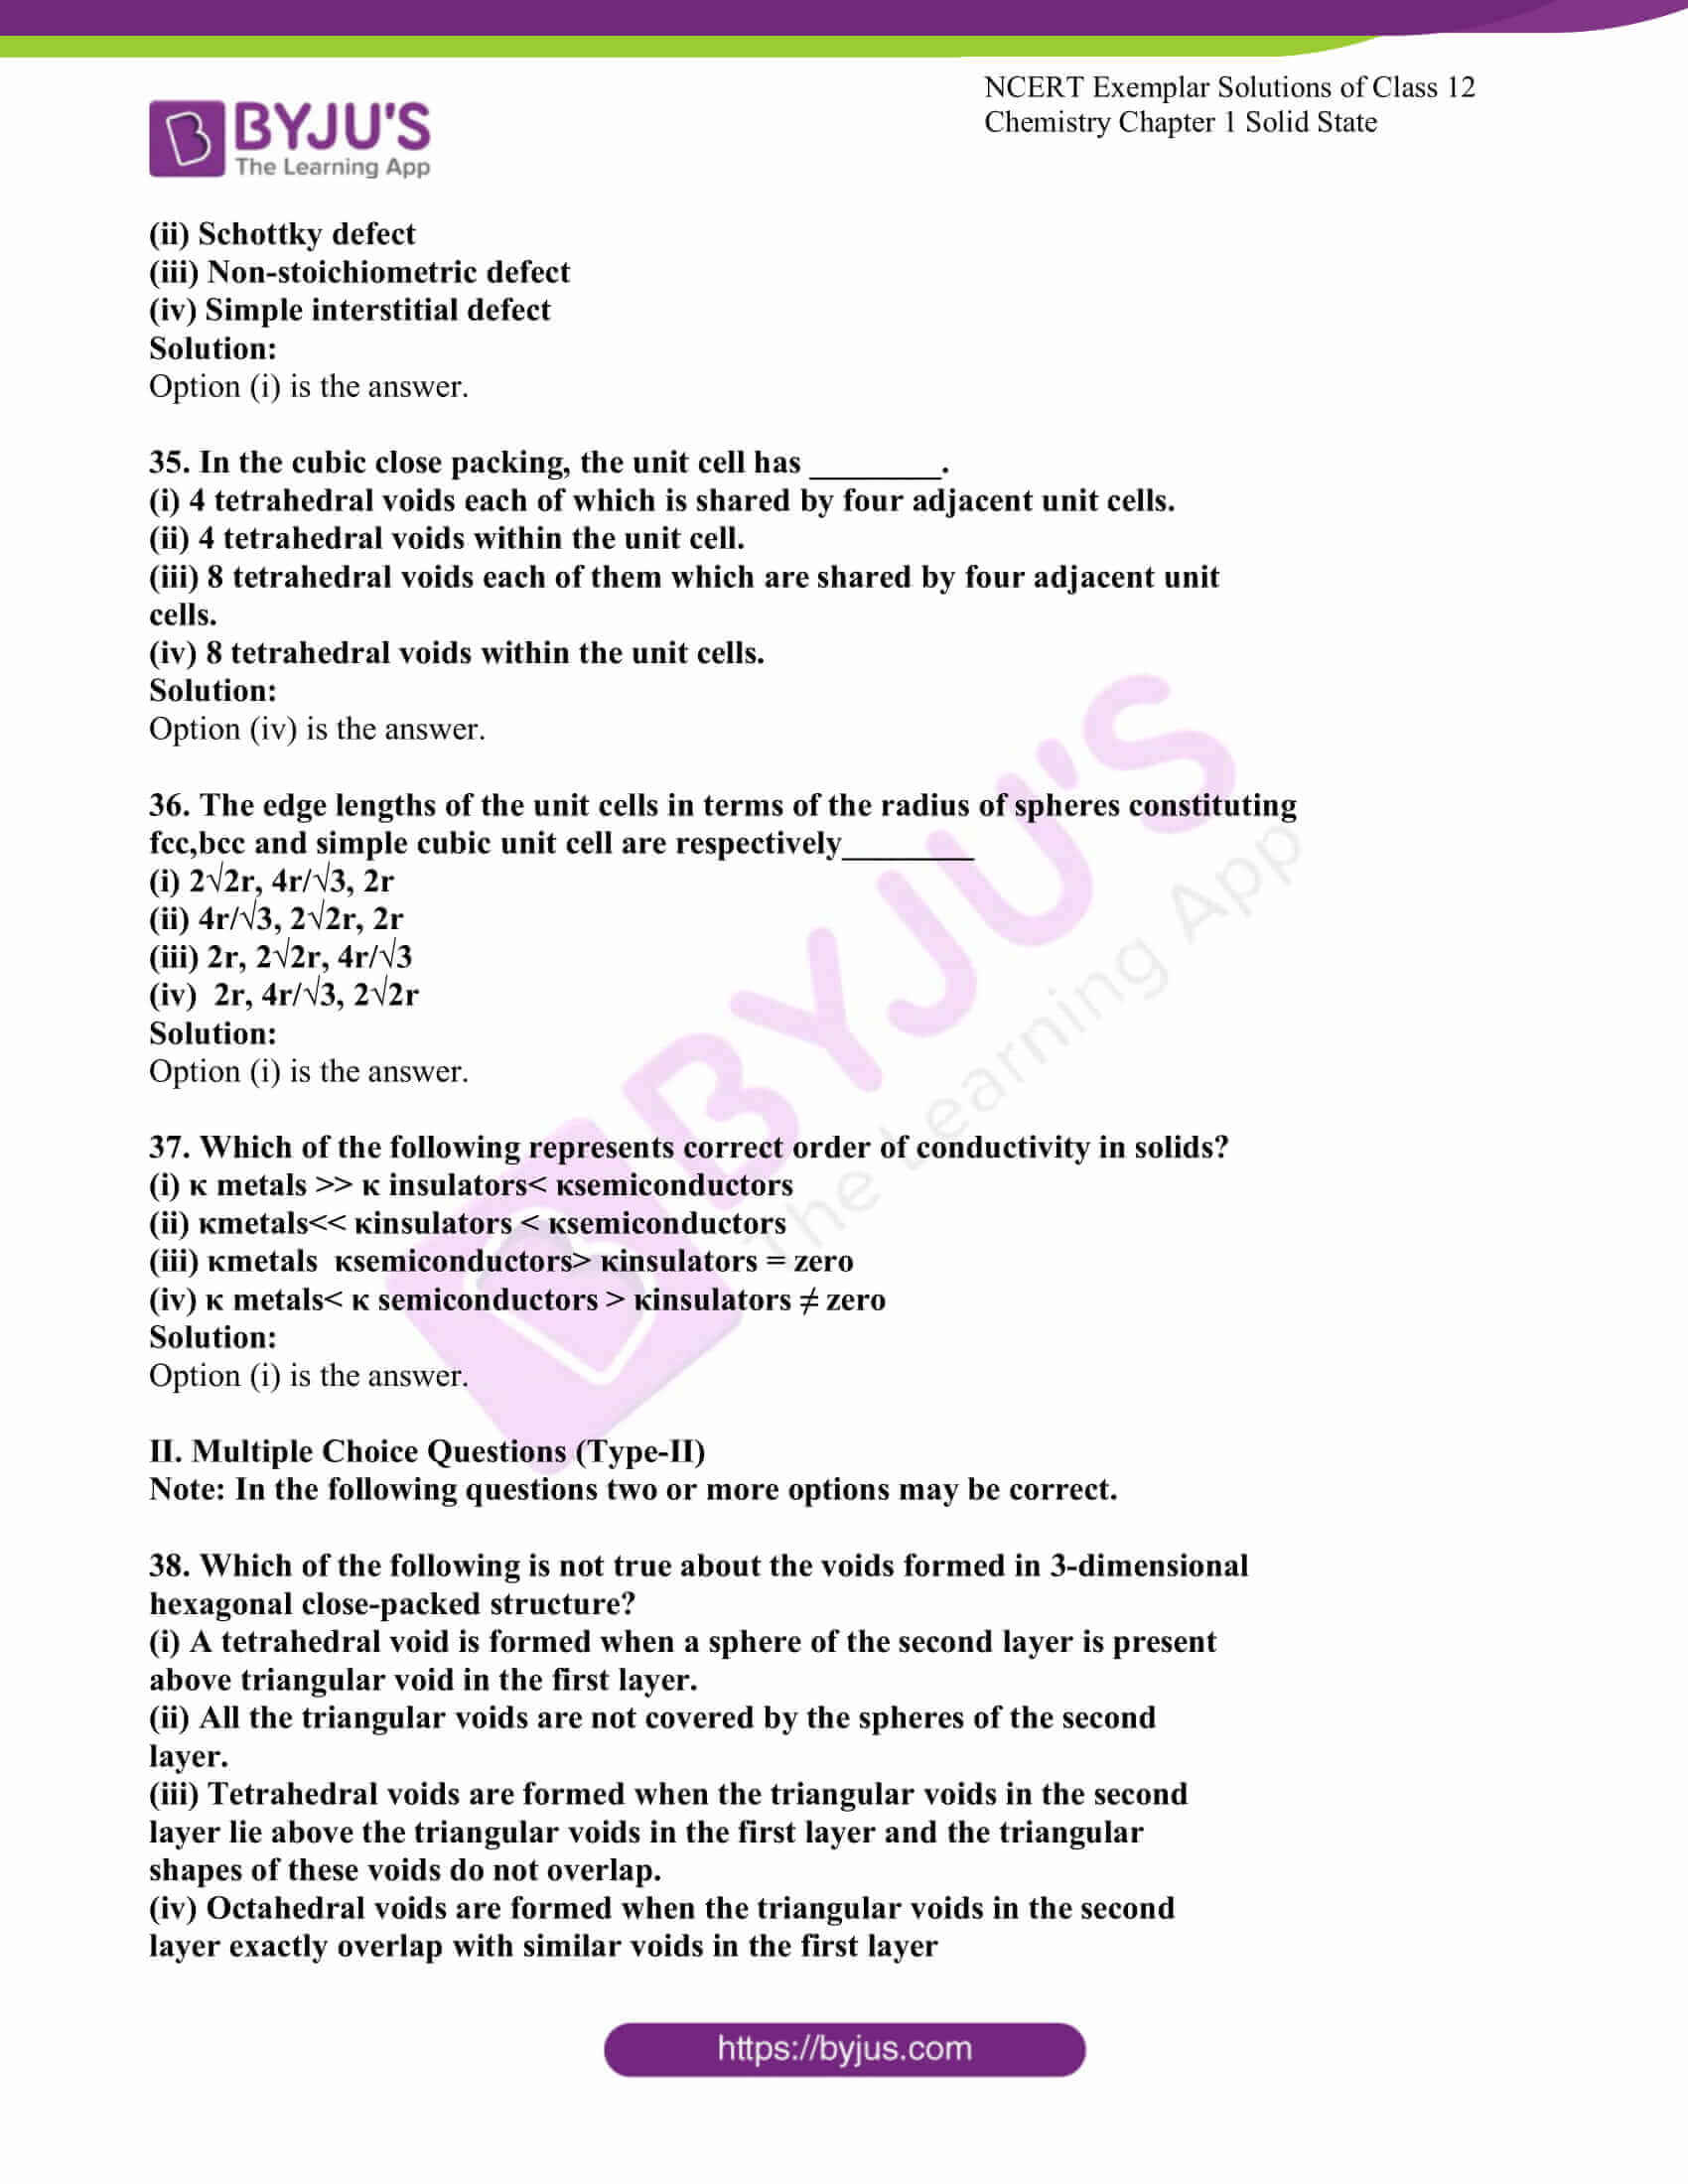 ncert exemplar solutions for class 12 chemistry chapter 1 solid 08